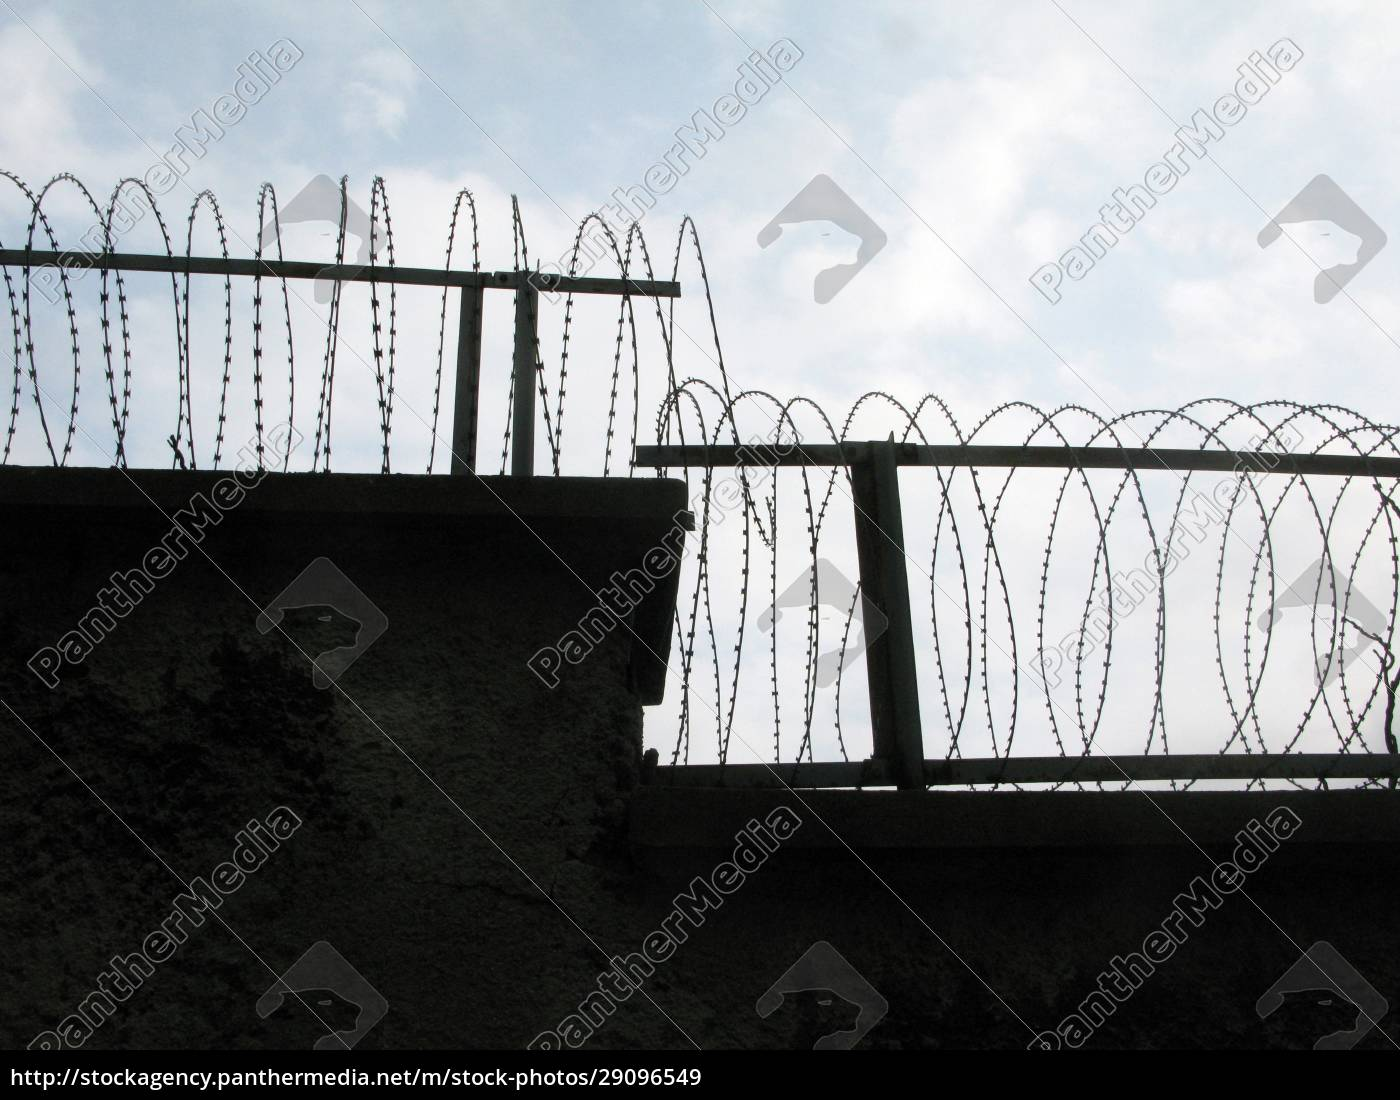 barbed, wire, in, the, penal, system - 29096549